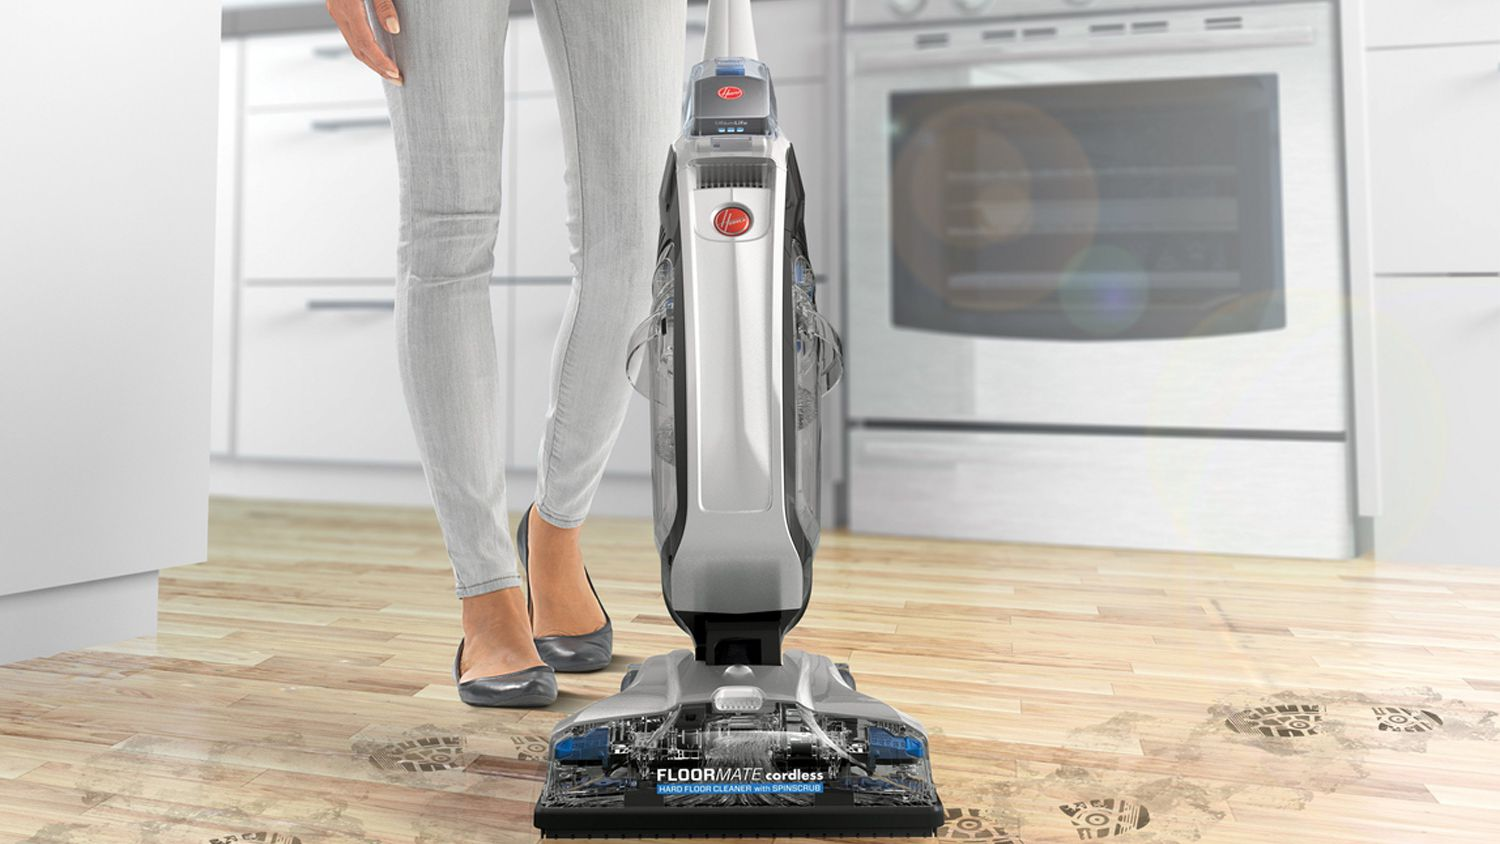 Hoover Floormate Cleaner Review